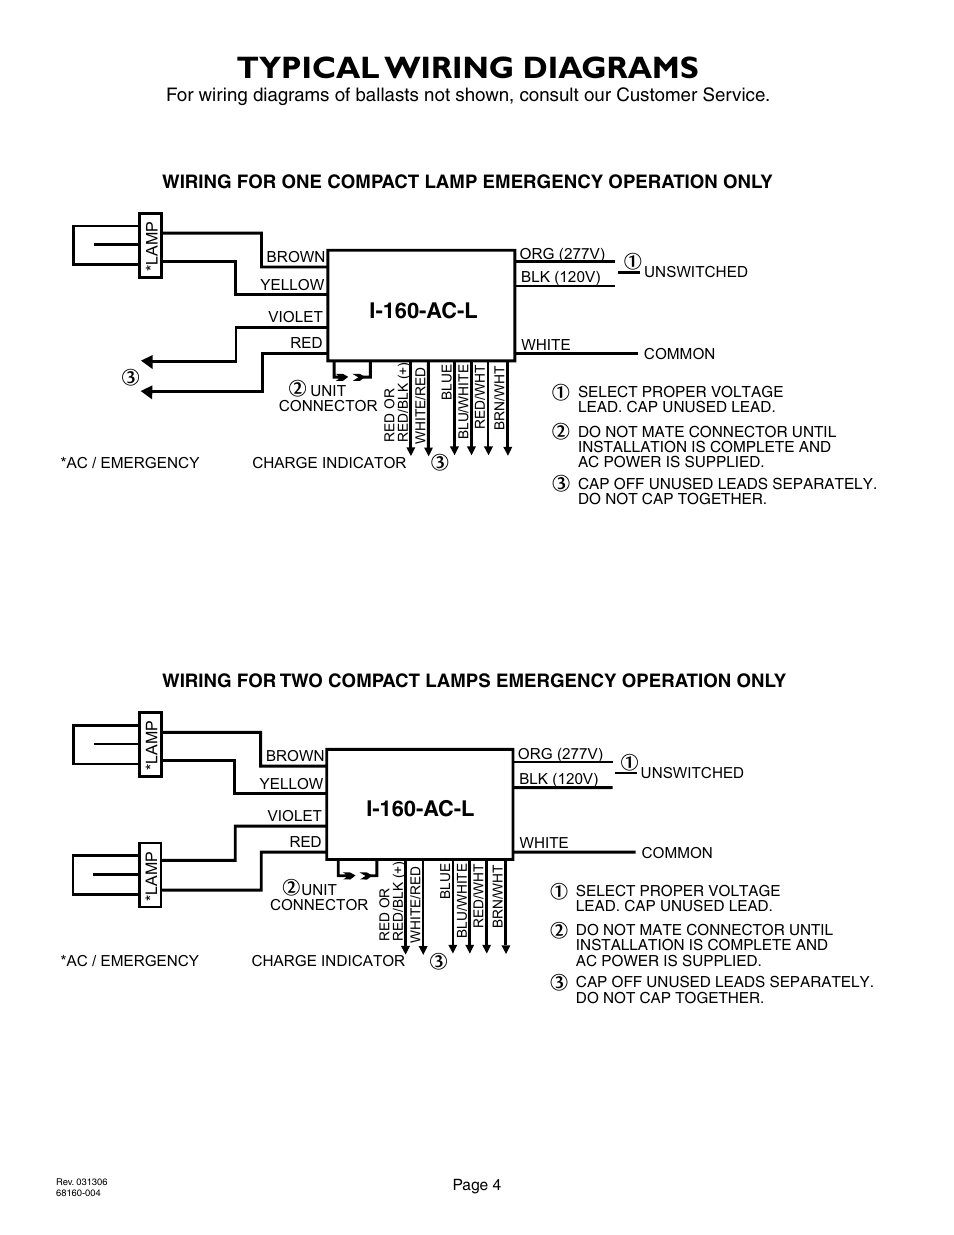 Typical Wiring Diagrams I 160 Ac L Iota User Manual Page 4